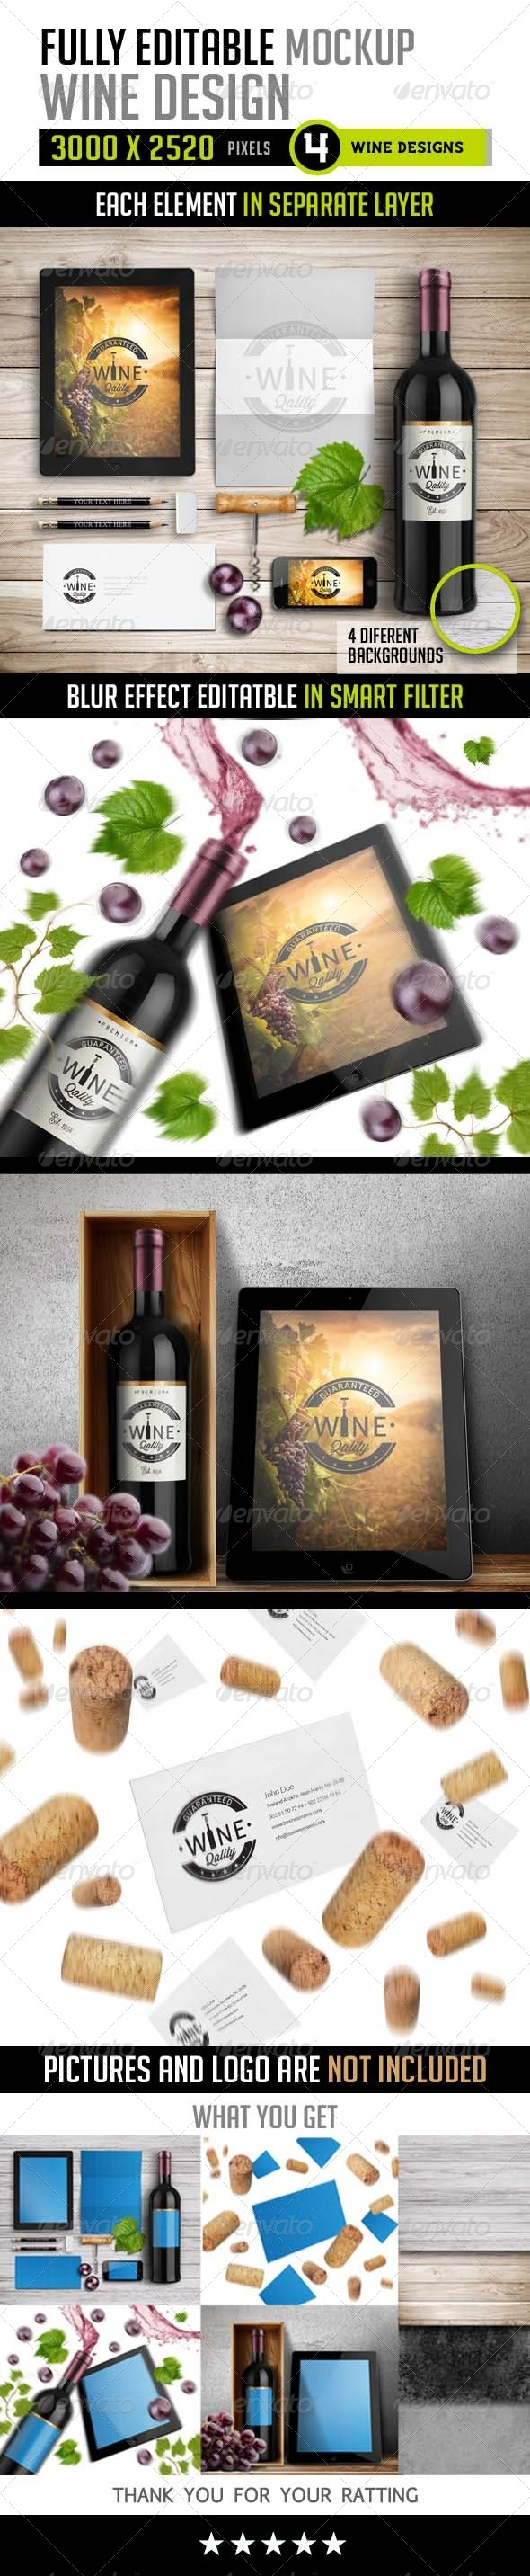 GraphicRiver Fully Editable Mockup Wine Design 8627765